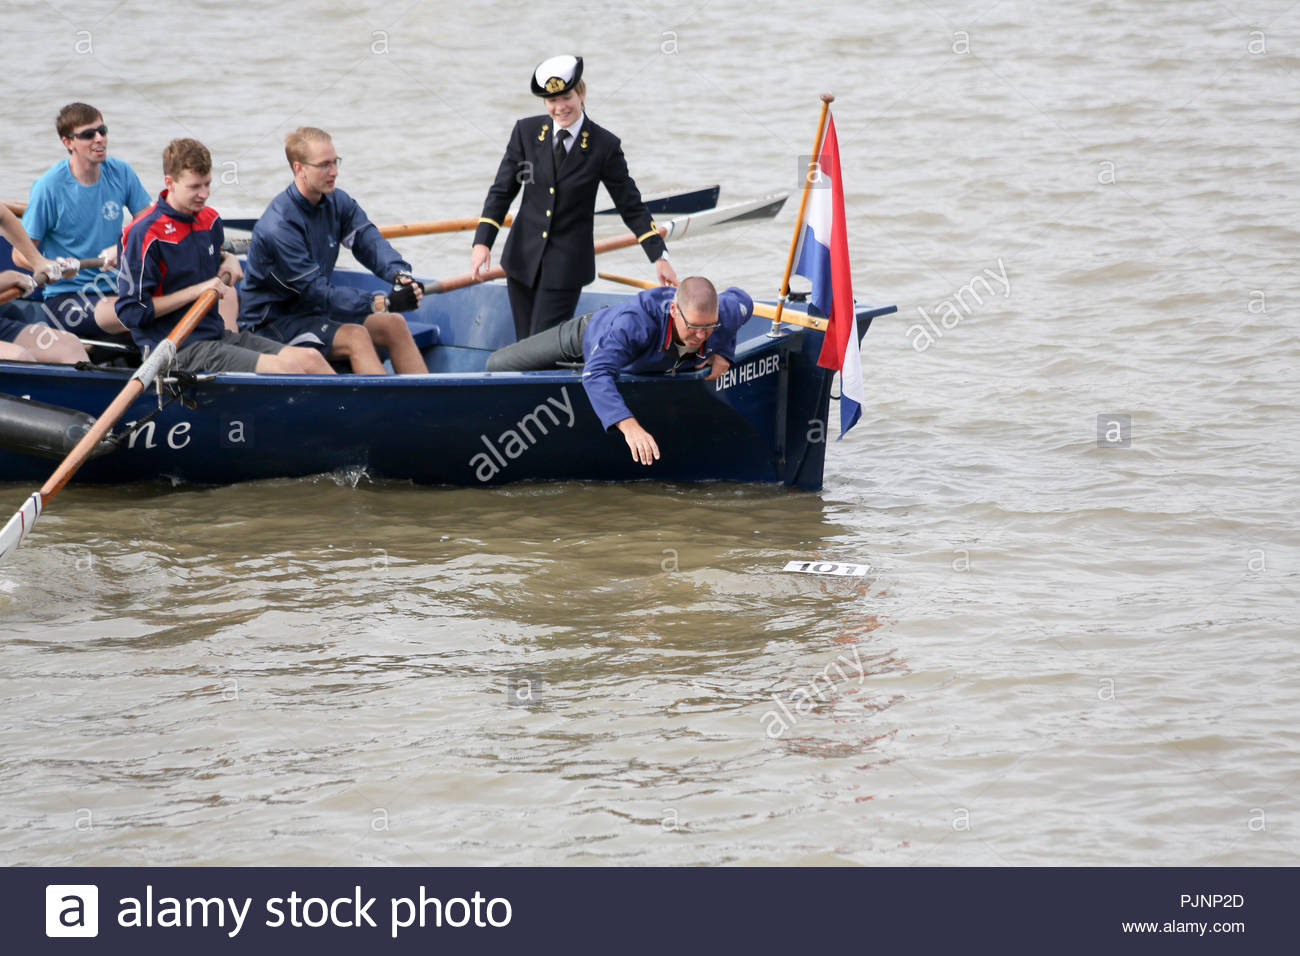 London, UK. 8th September, 2018. Debuted in 1988, The Great River Race is an annual handicaped race featuring  traditional-style, coxed craft powered by oars or paddles. Setting off from Millwall, with the finish in Ham. The winner will be crowned the UK Traditional Boat Champion. Credit: Katie Chan/Alamy Live News - Stock Image